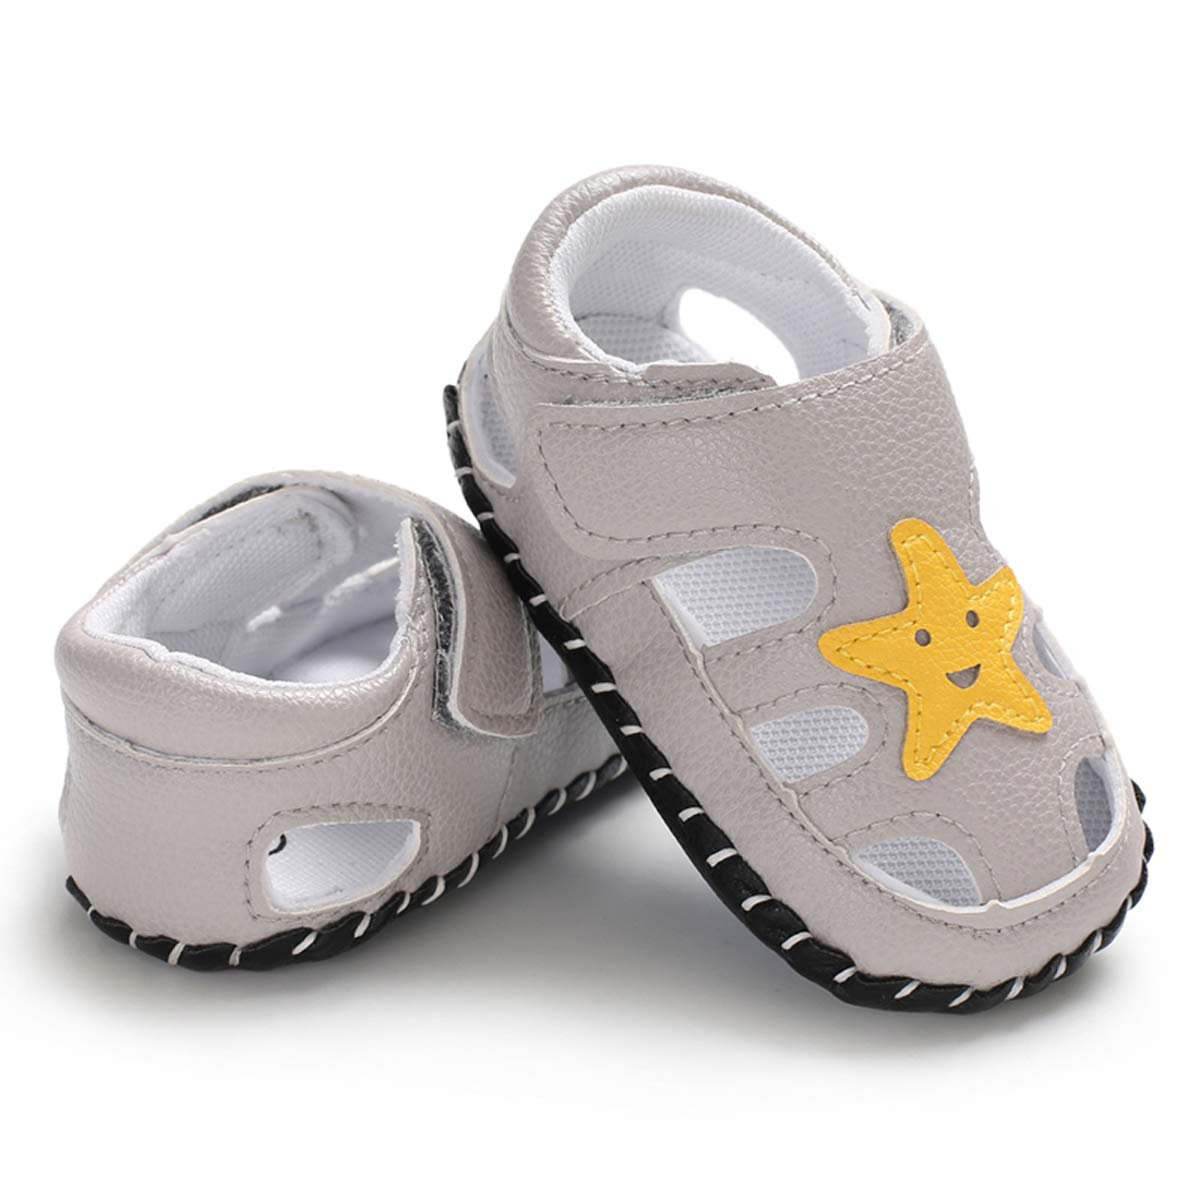 Icooltech Newborn Baby Girls Cartoon PU Leather Shoes Infant Boys Summer Outdoor Anti-Slip Sneaker